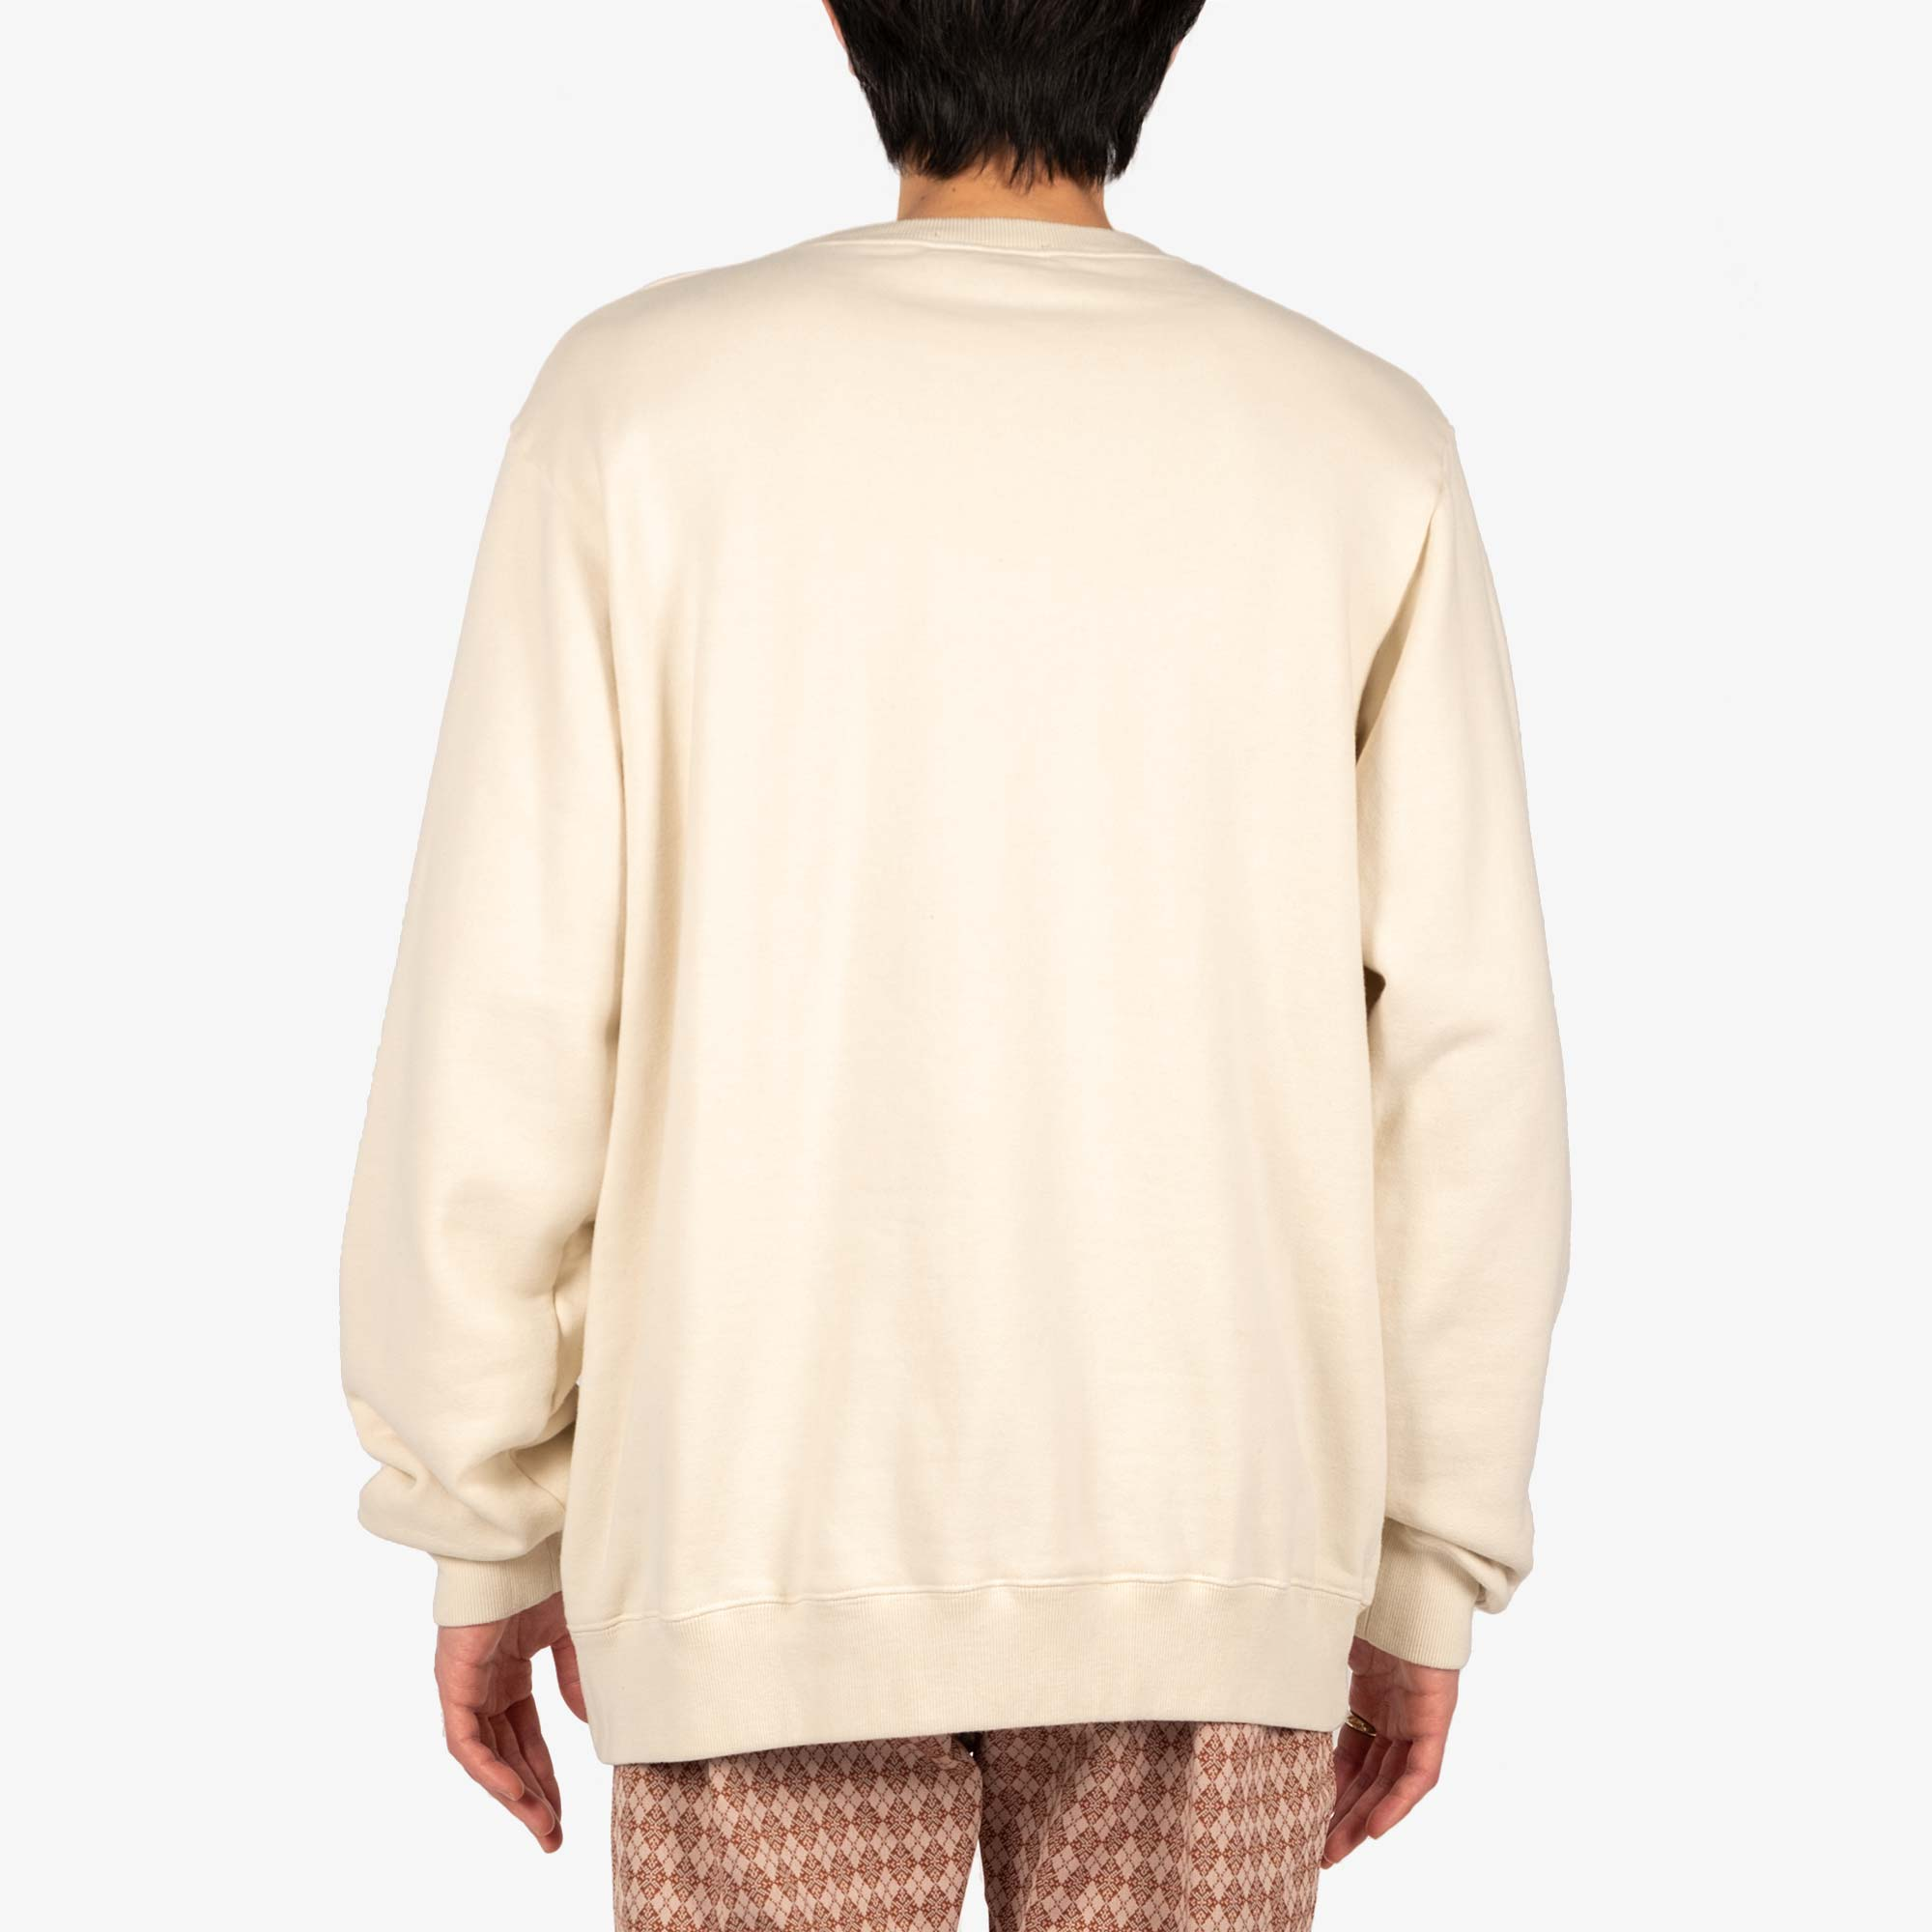 Undercover U Table Sweat UC2A4893-4 - Ivory 5